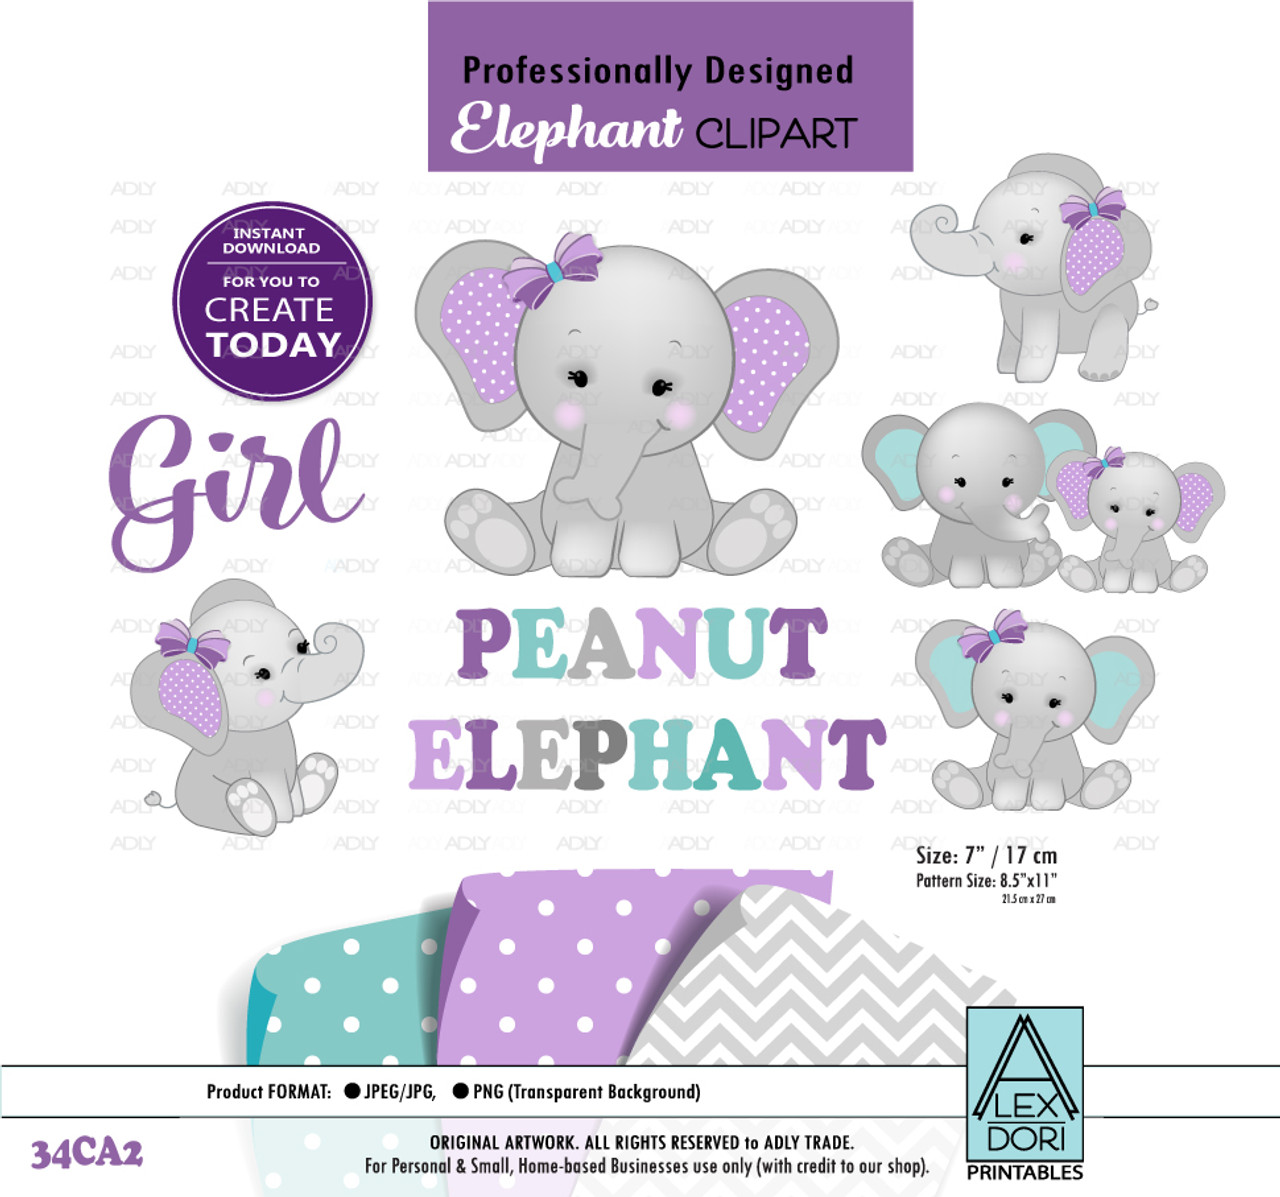 peanut elephant mommy and baby digital clipart baby elephant girl clipart purple gray teal turquoise clipart png jpeg adly invitations and digital party  [ 970 x 907 Pixel ]